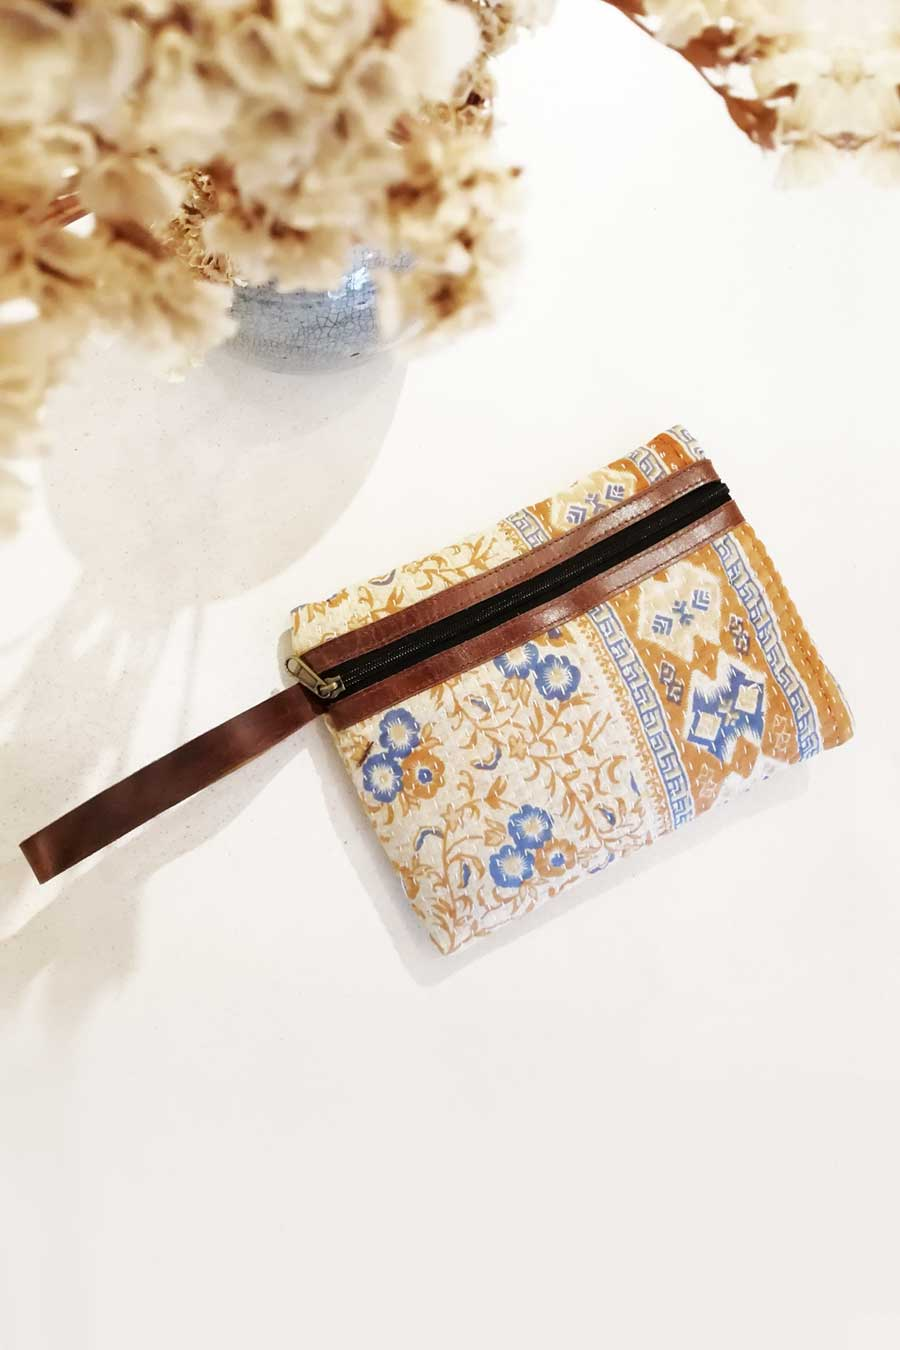 Floral Clutch Bag with Leather Strap